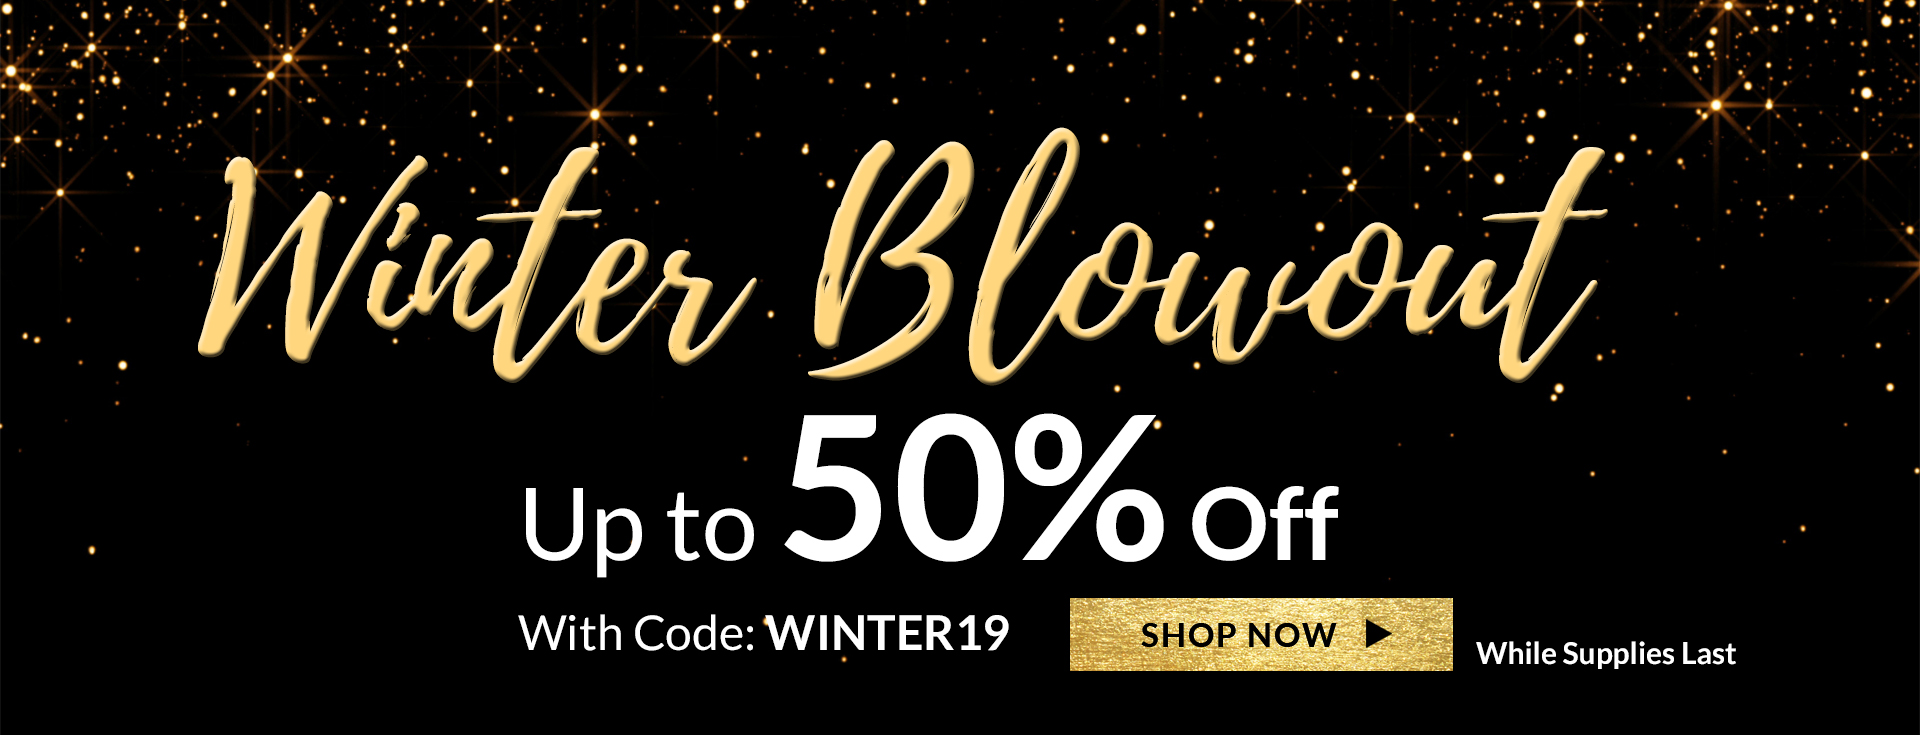 Winter Clearance Sale Up to 50% off